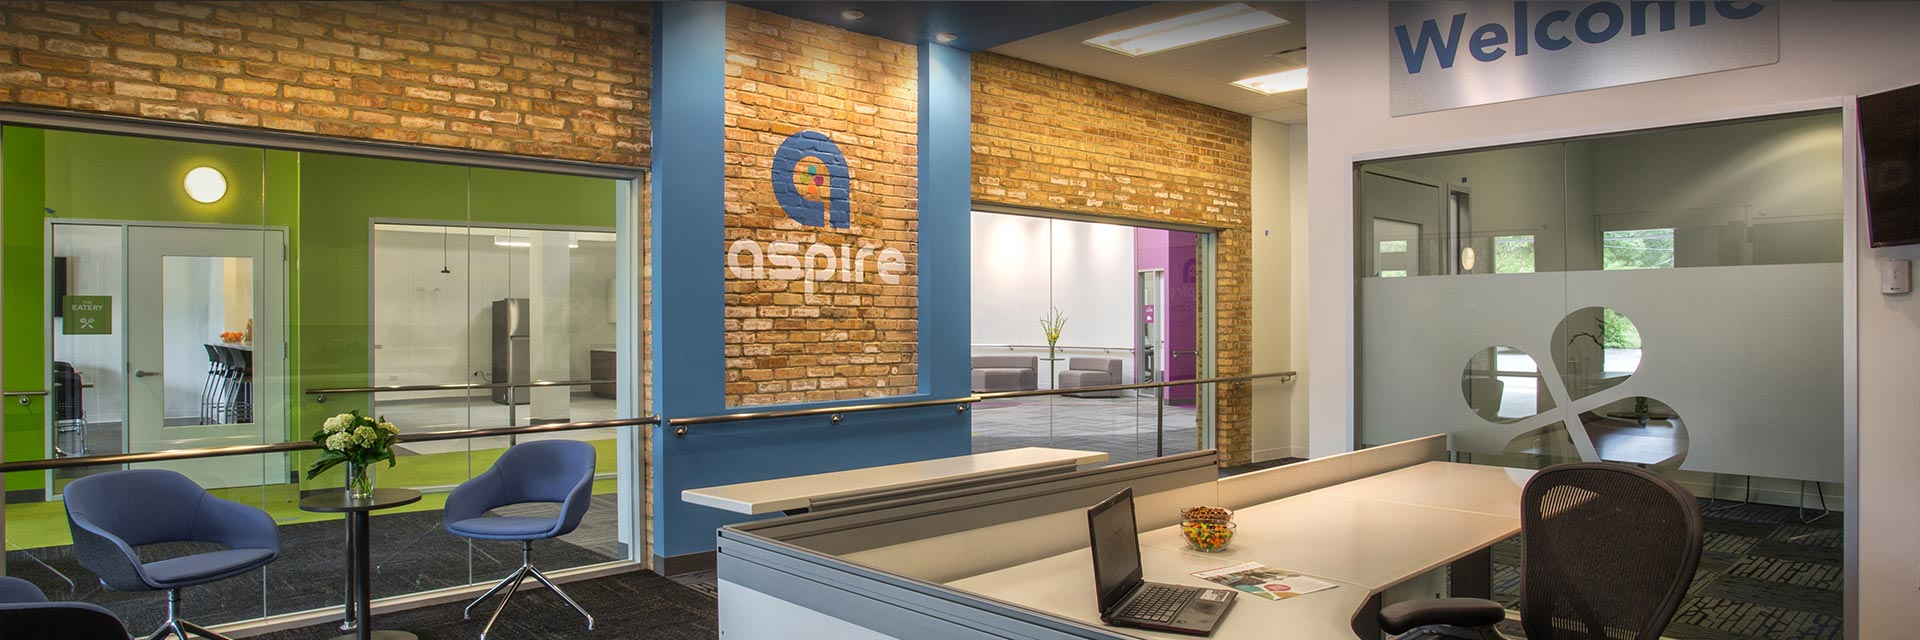 Aspire Career Academy